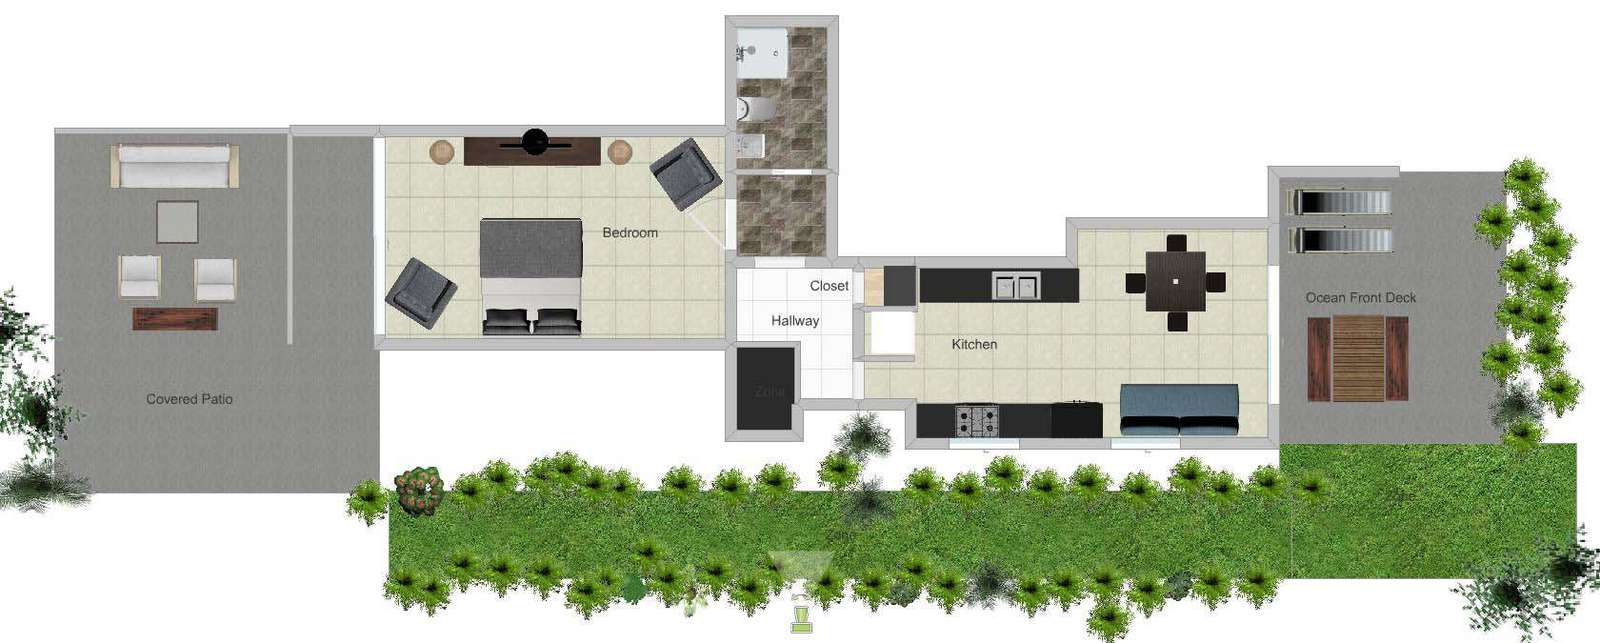 Floor plan shows roomy suite with full kitchen.